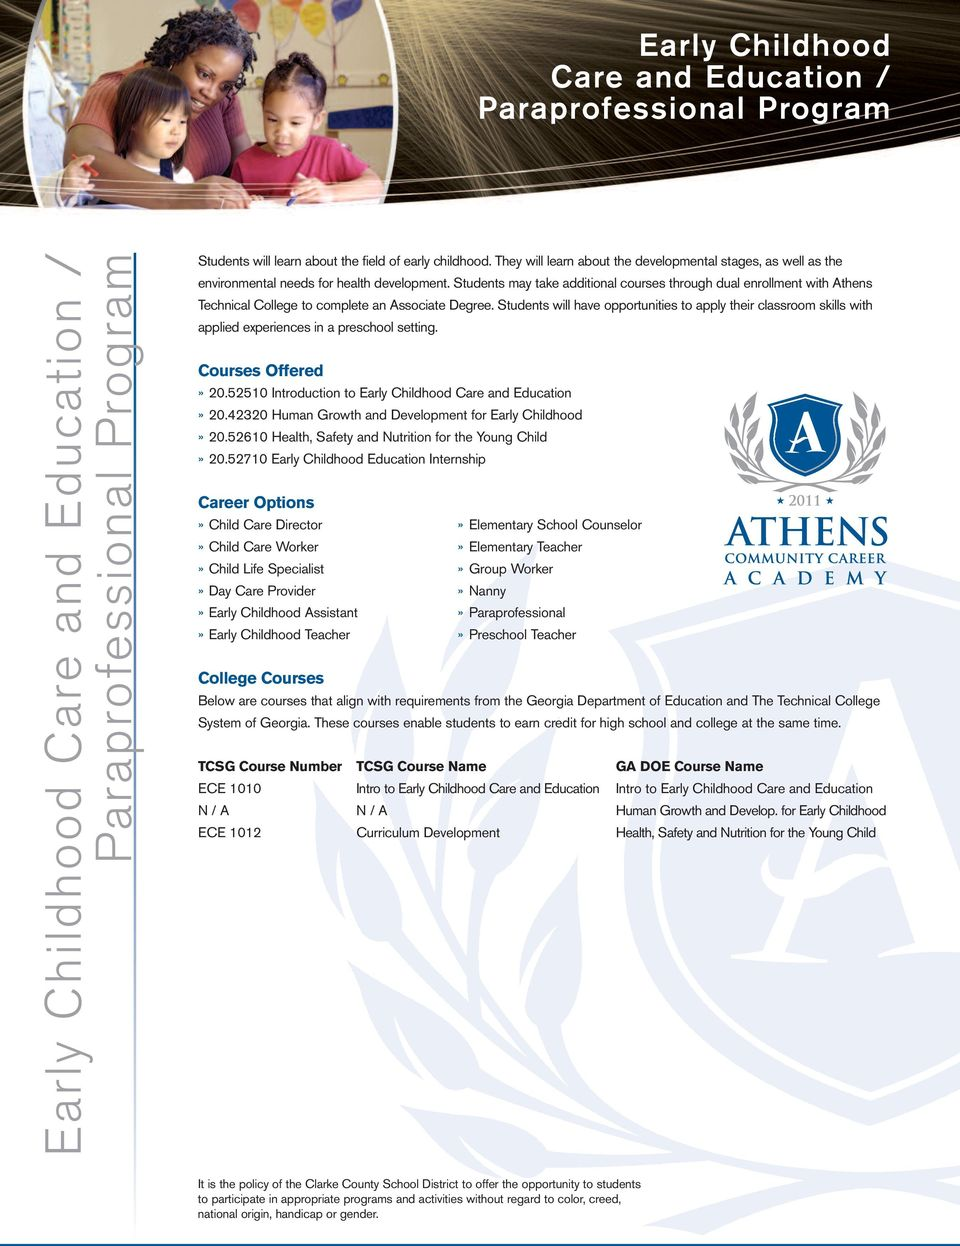 Students may take additional courses through dual enrollment with Athens Technical College to complete an Associate Degree.